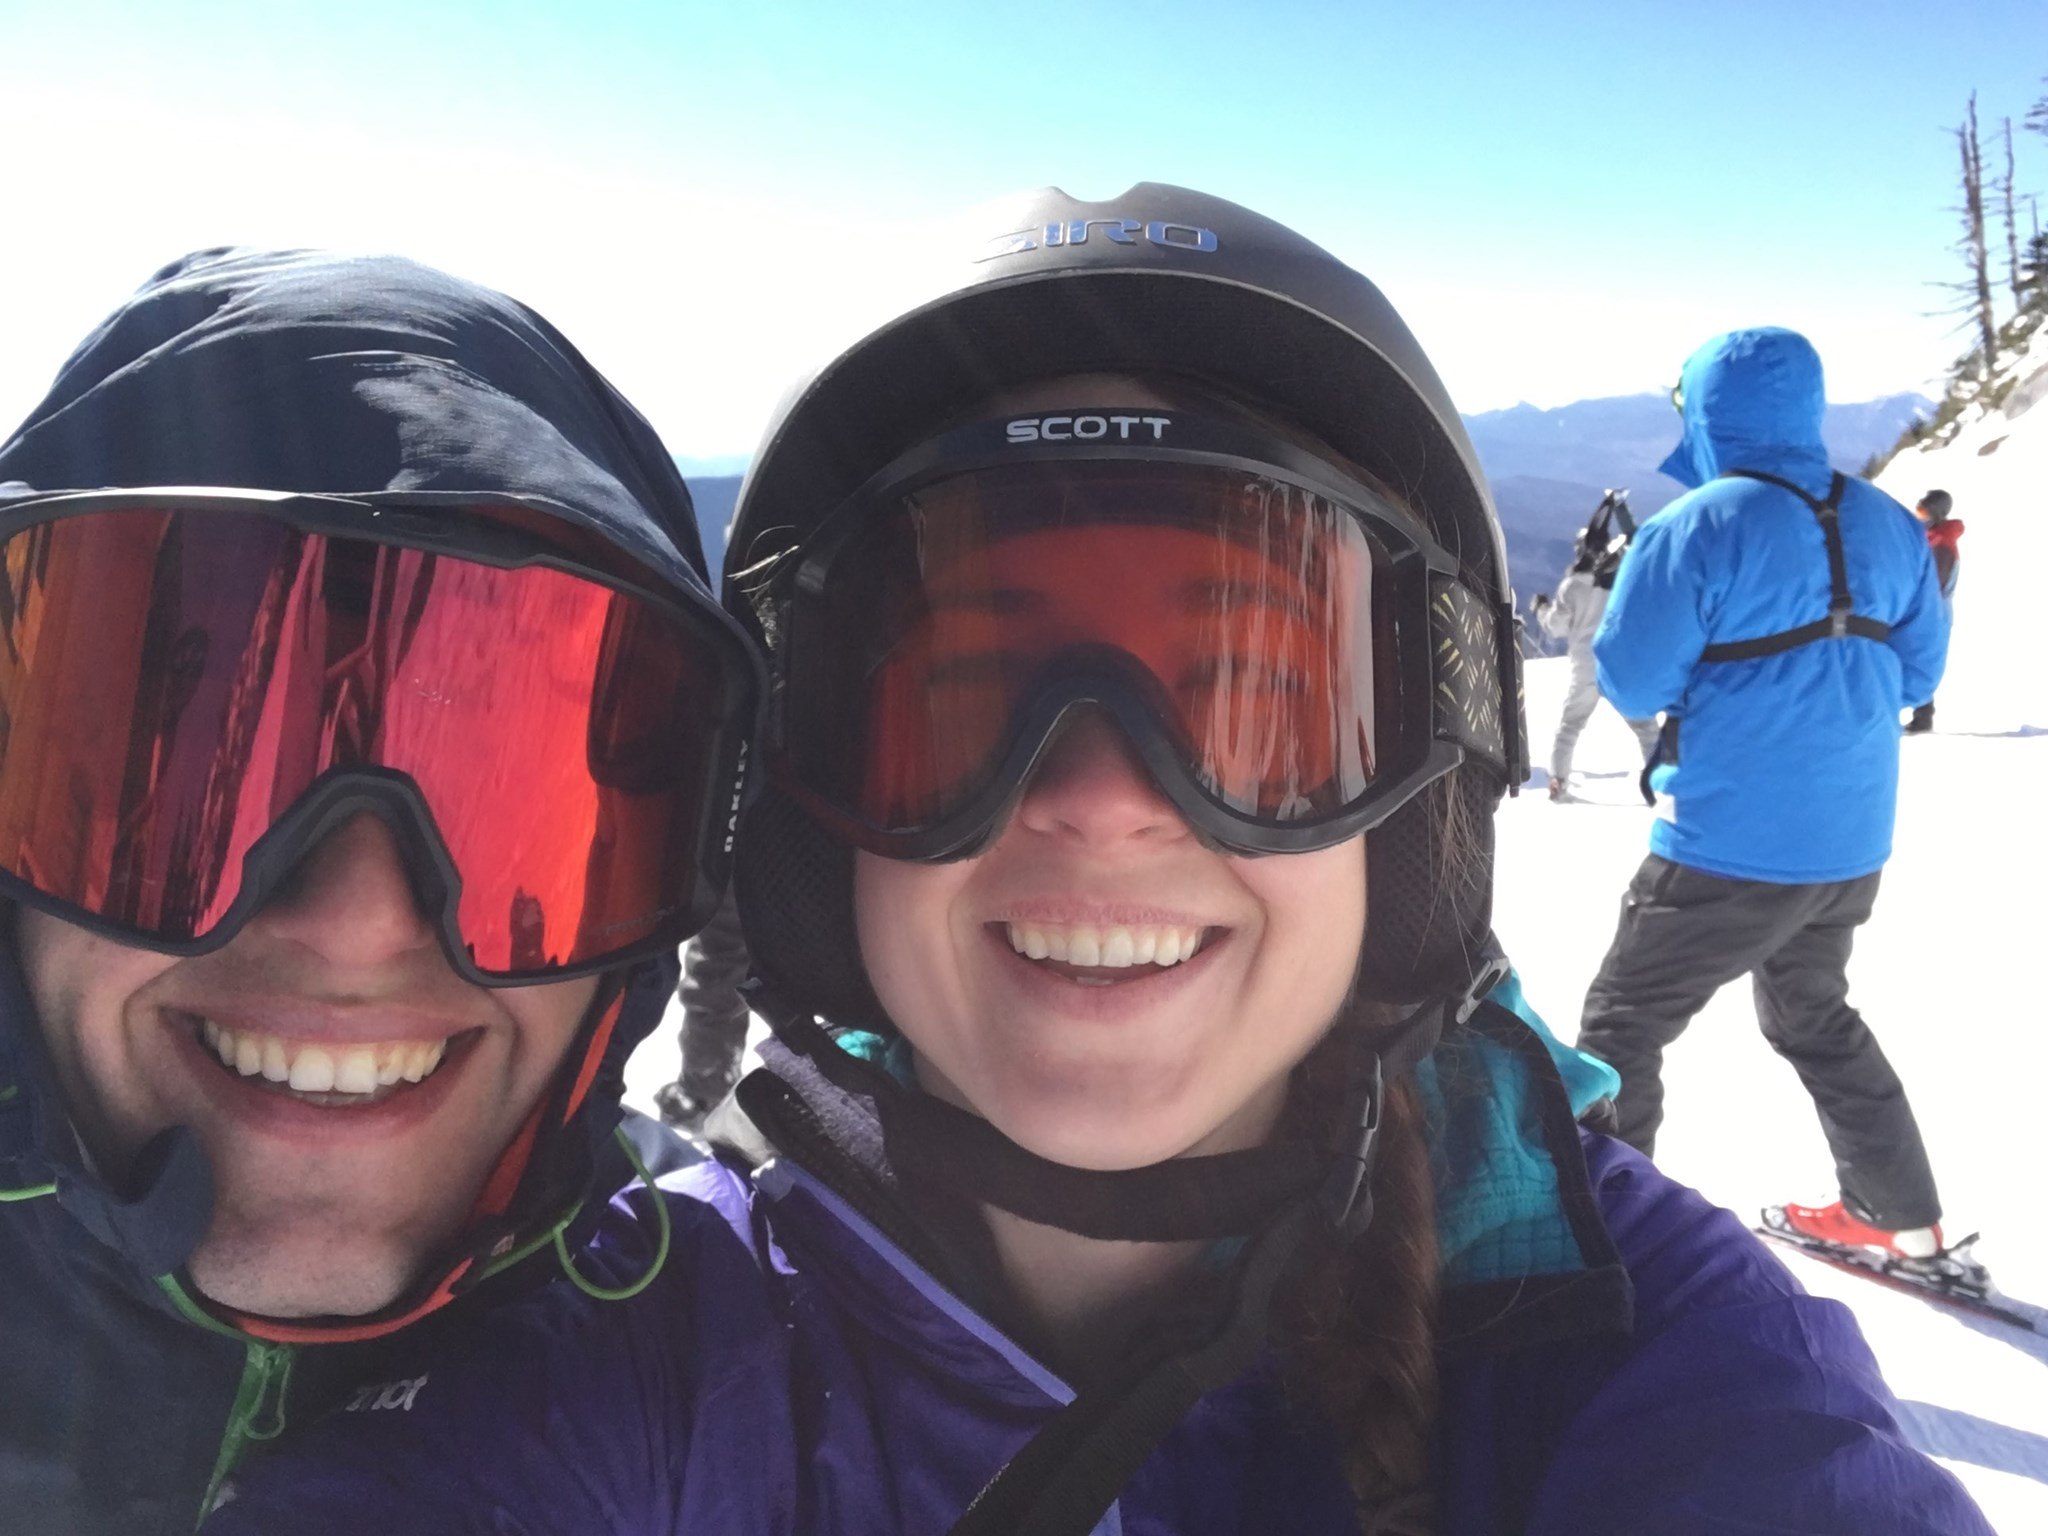 Skiing at Whiteface mountain, NY, 2017